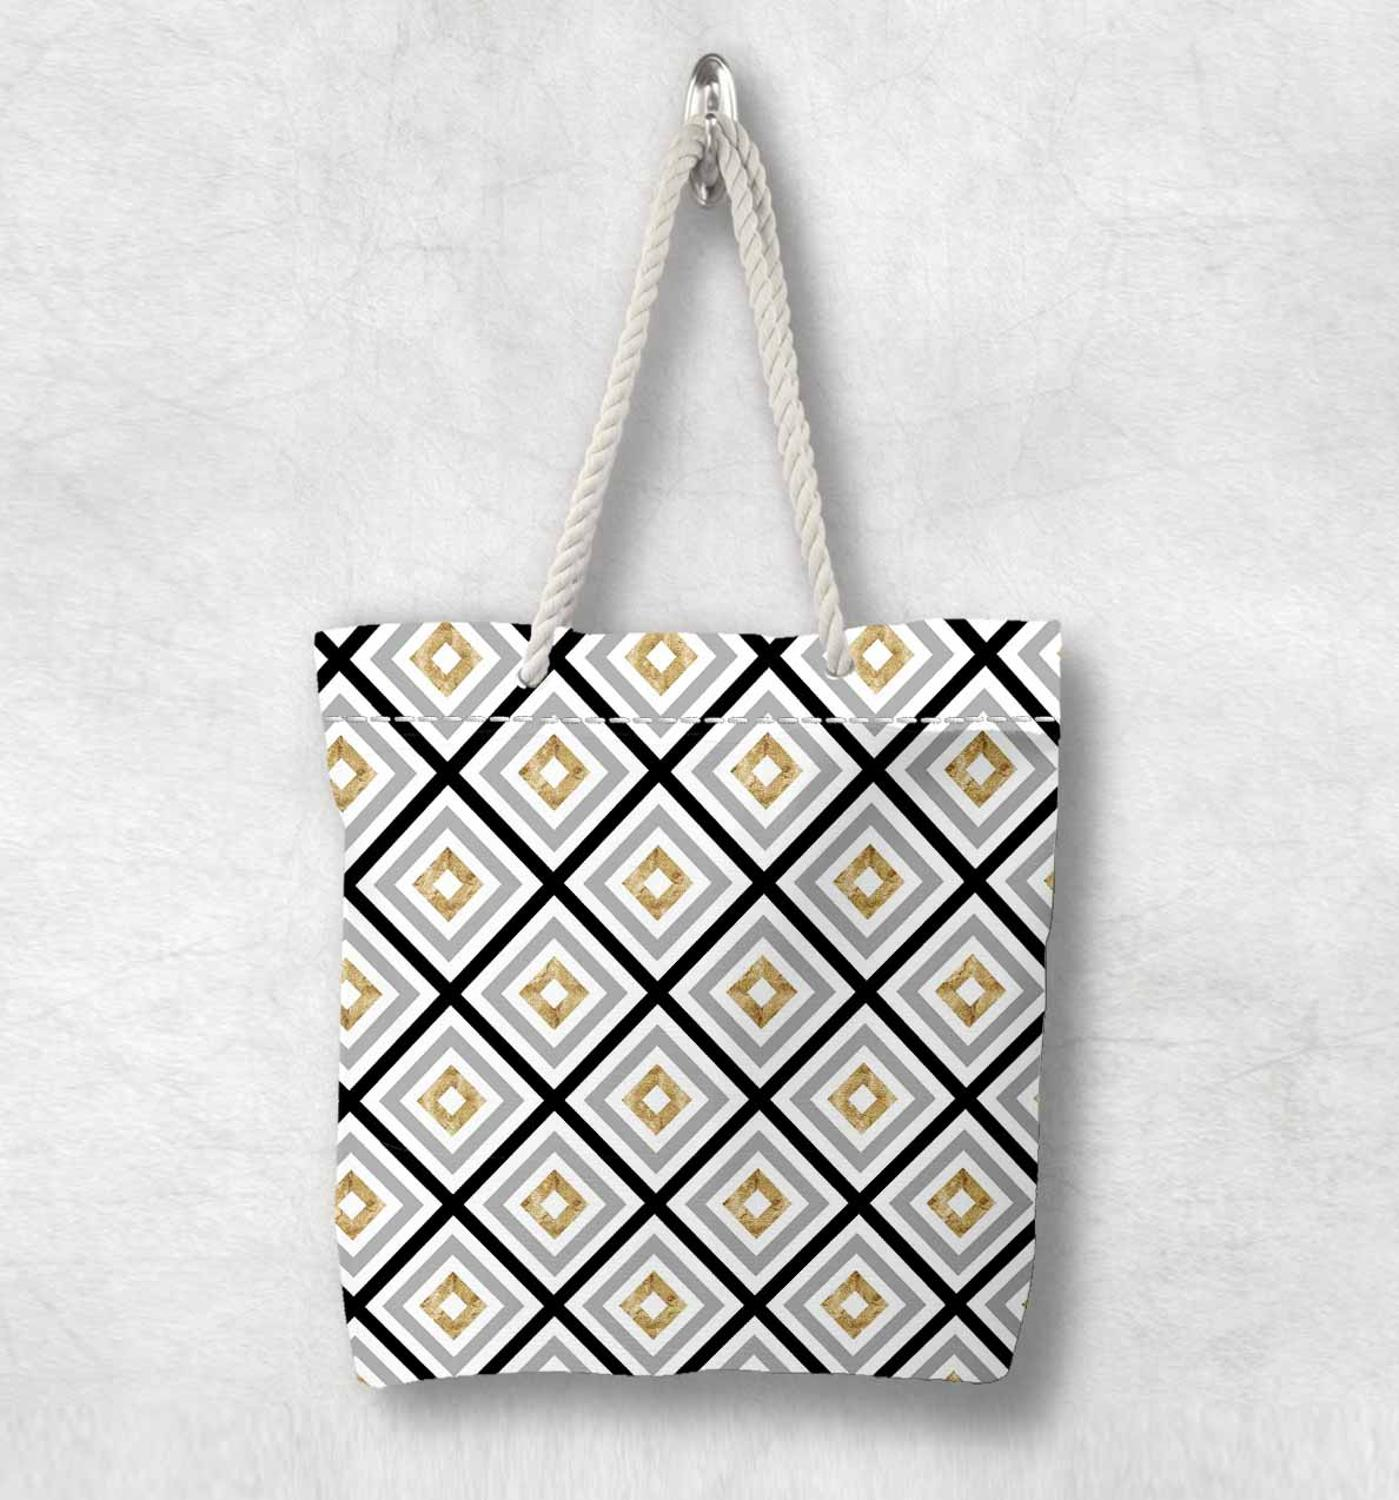 Else Gray Black Yellow Lines Tiles Geometric Fashion White Rope Handle Canvas Bag Cotton Canvas Zippered Tote Bag Shoulder Bag